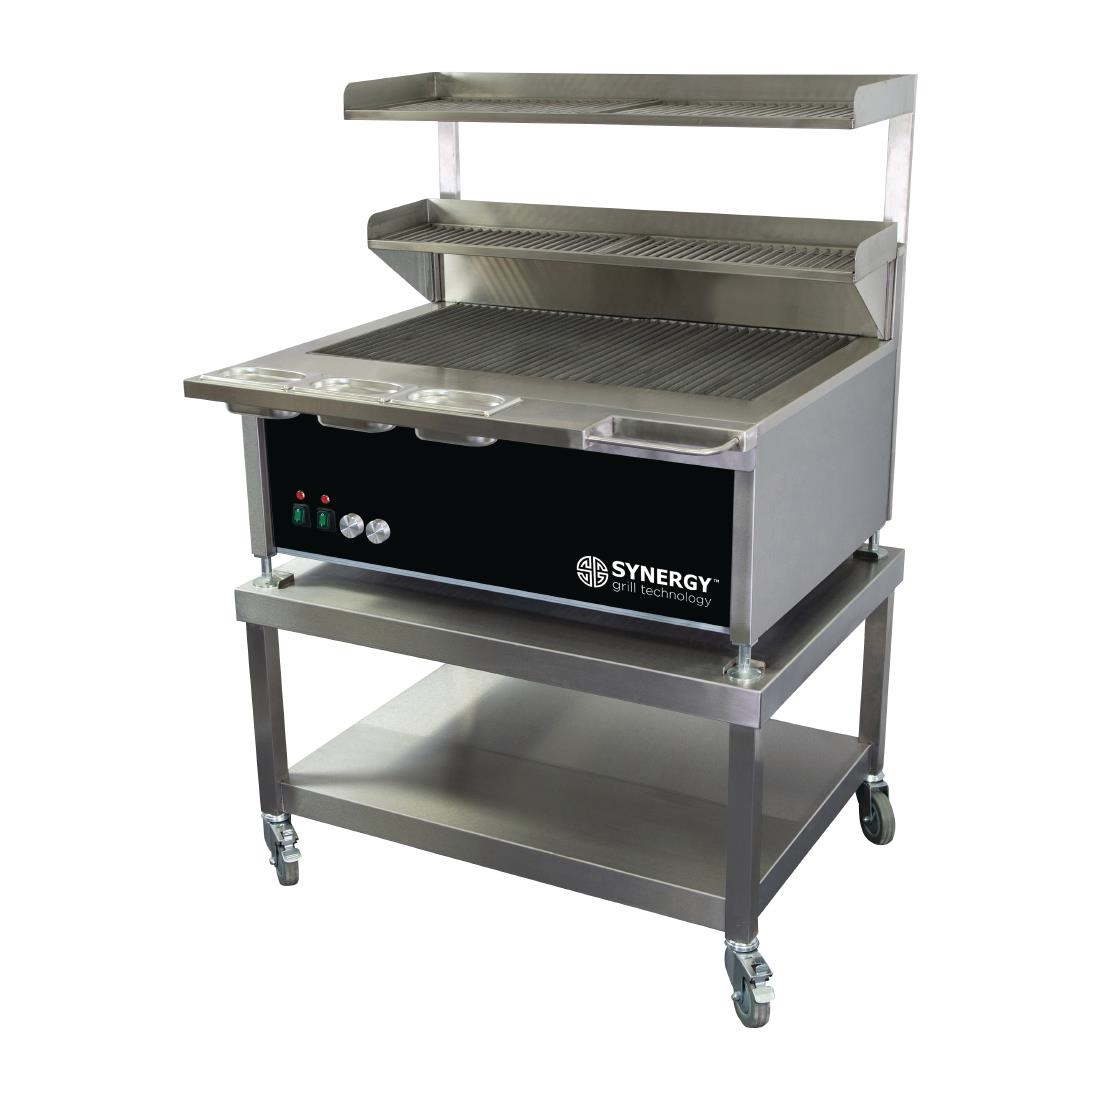 Image of Synergy ST900 Deep with Garnish Rail and Slow Cook Shelf